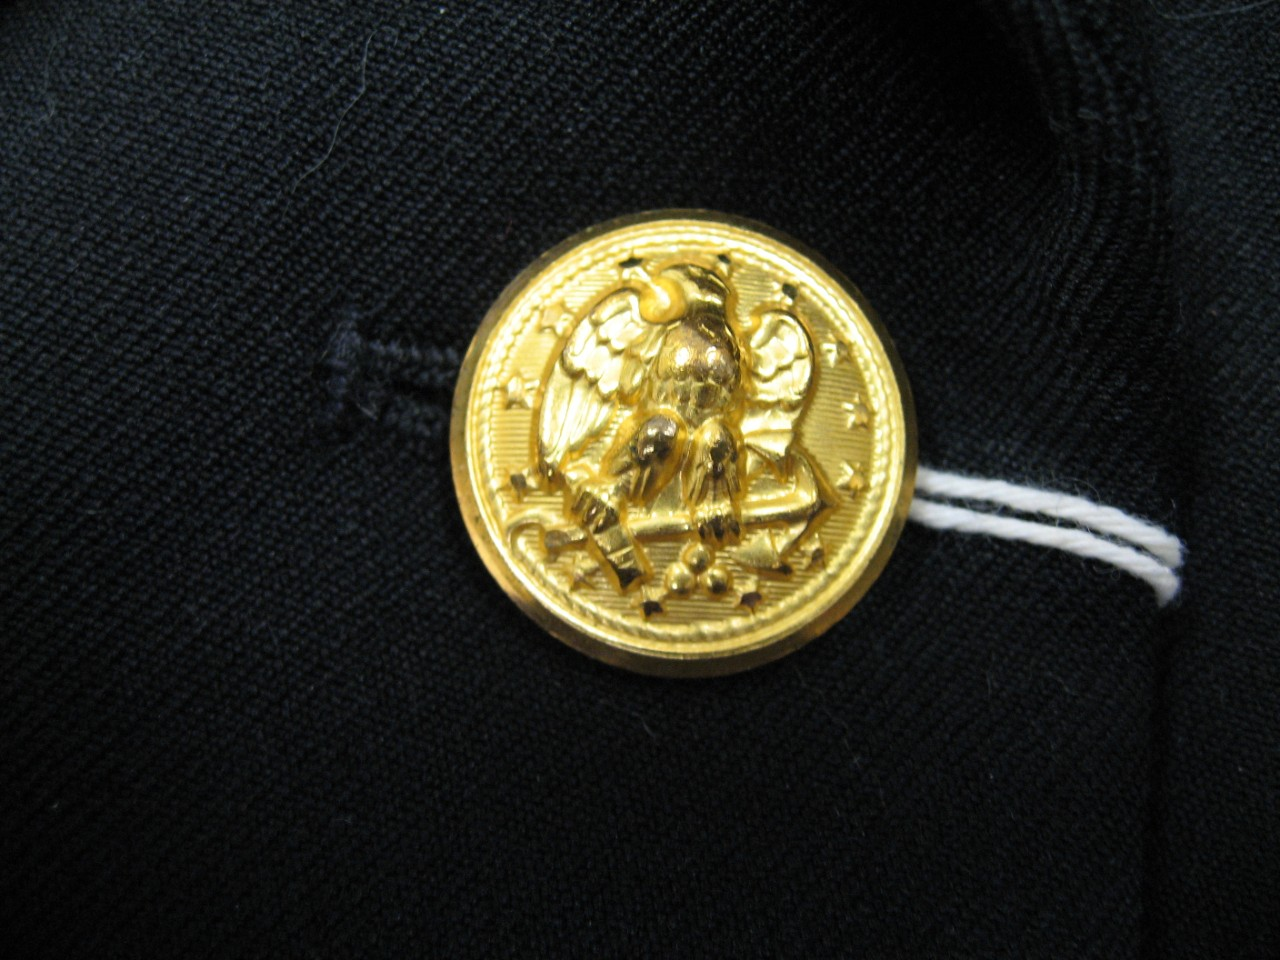 Gilt button worn on the Service Dress Blue uniform coat of a WAVES Chief Petty Officer. Standard Navy button design.